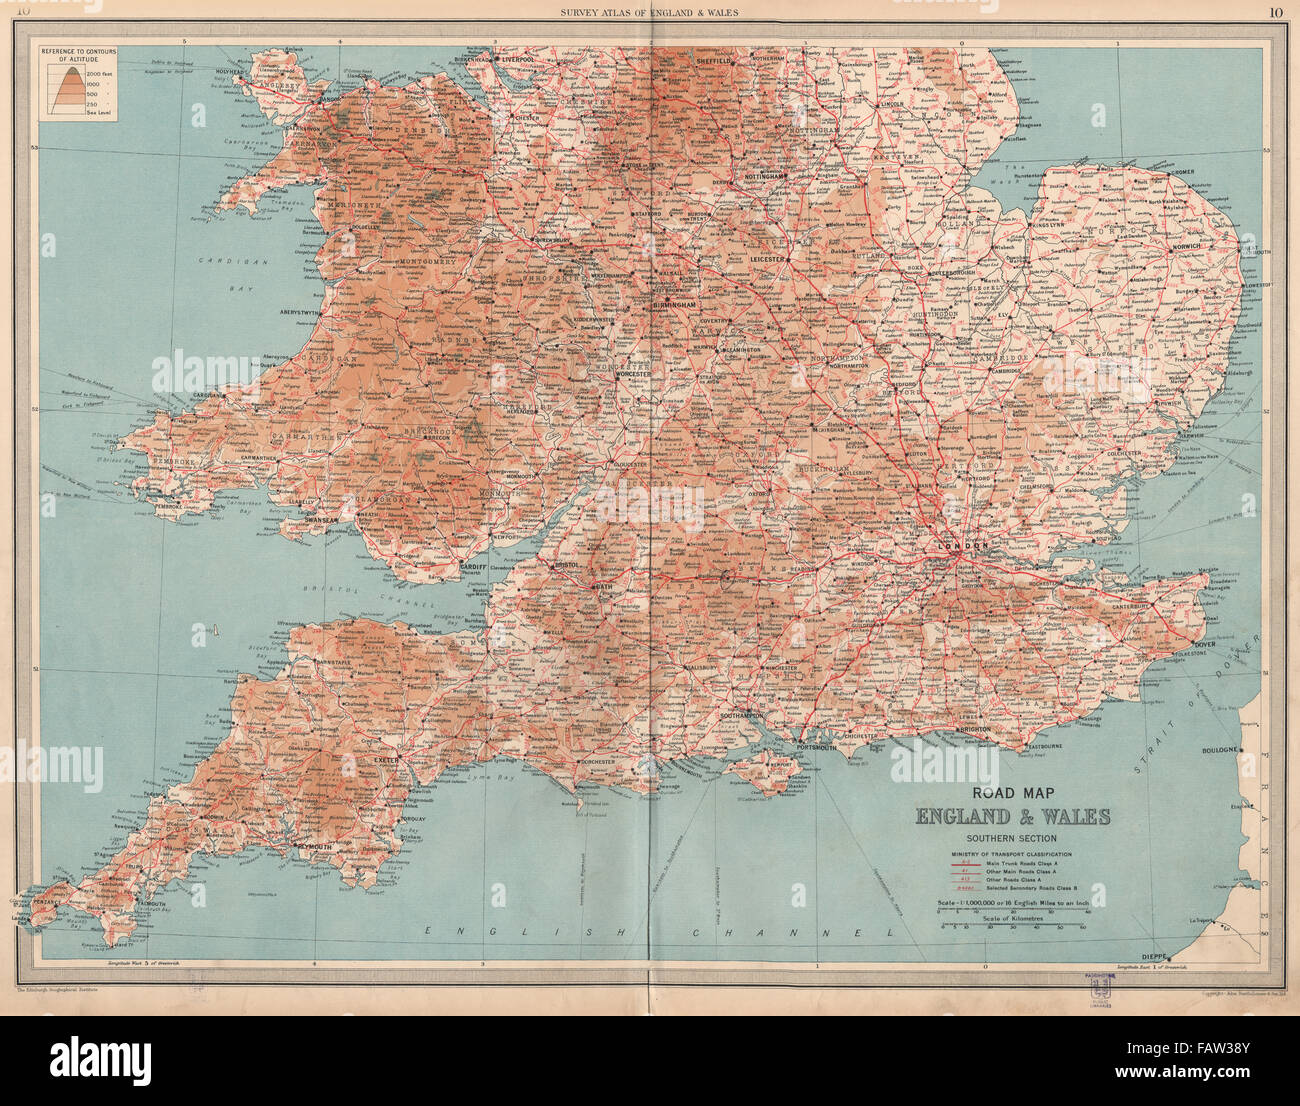 Large Detailed Map Of England.England Wales South Road Map A B Roads Pre Motorways Large